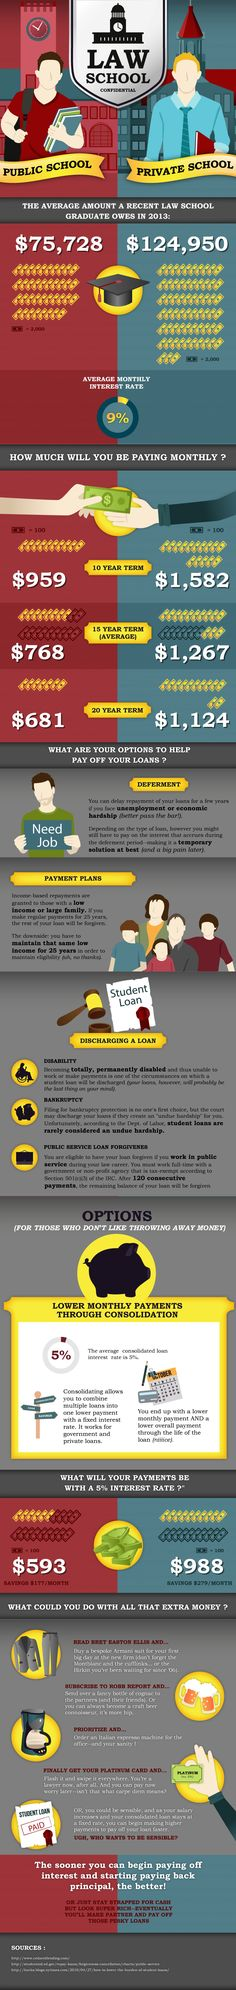 Law School Student Debt [Infographic]